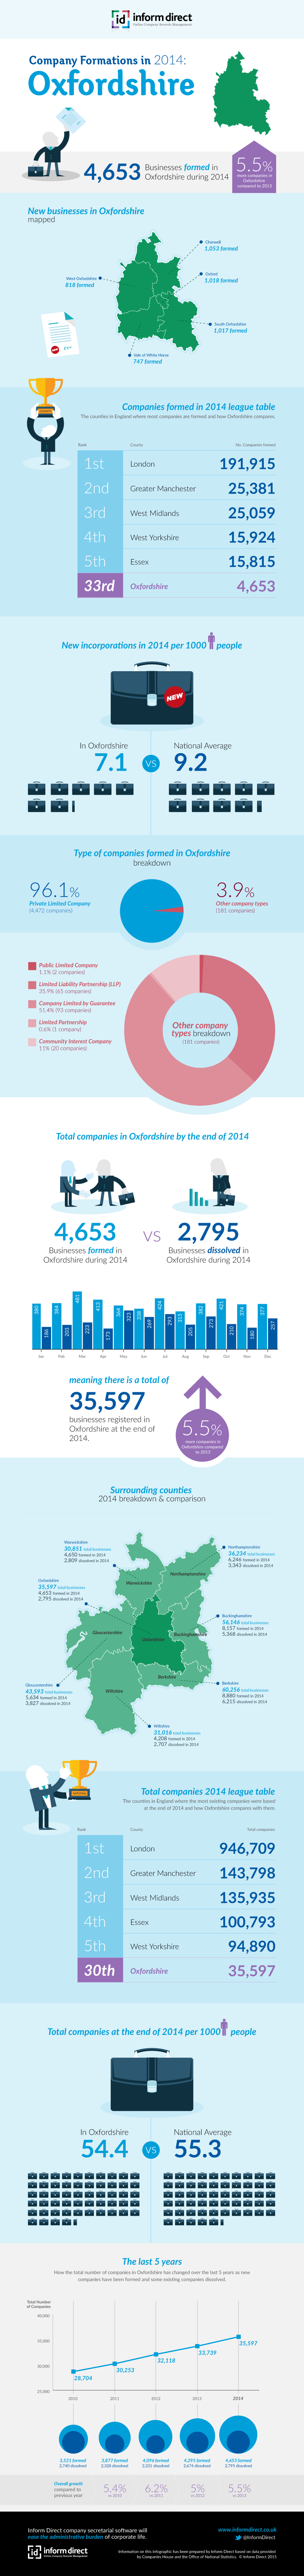 Inform Direct - Company Formations in Oxfordshire 2014 Infographic